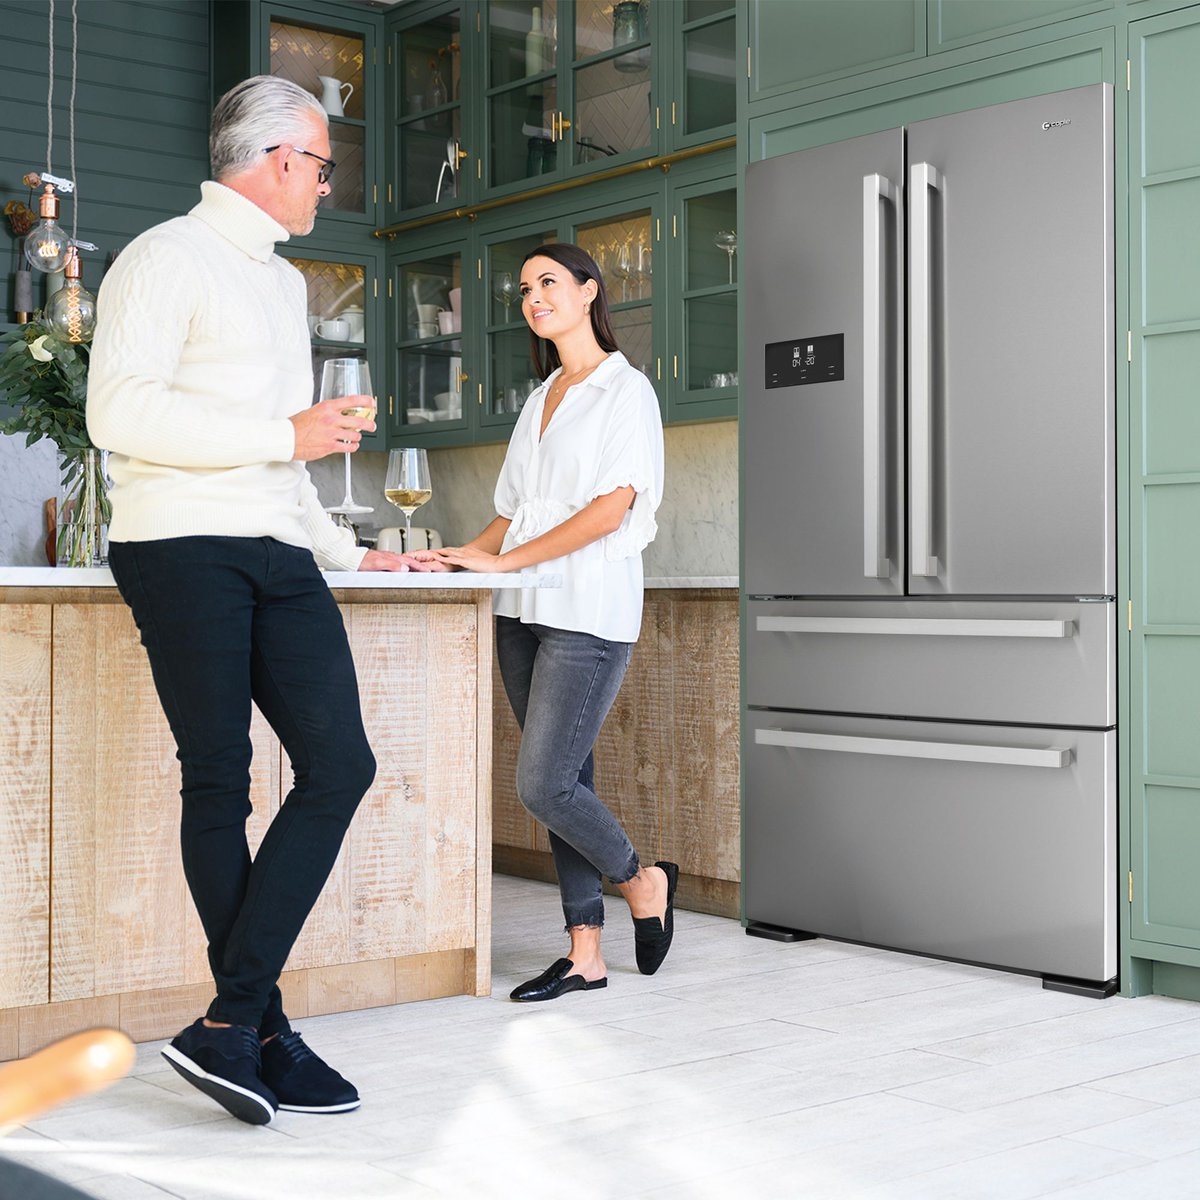 With an effortless, white LED touch control display this beautiful stainless steel door fridge-freezer with with grey cabinets, is the perfect balance of beauty & functionality😍 Find out more about the CAFF42 here: buff.ly/3mFxjup #CapleQuality #Fridge